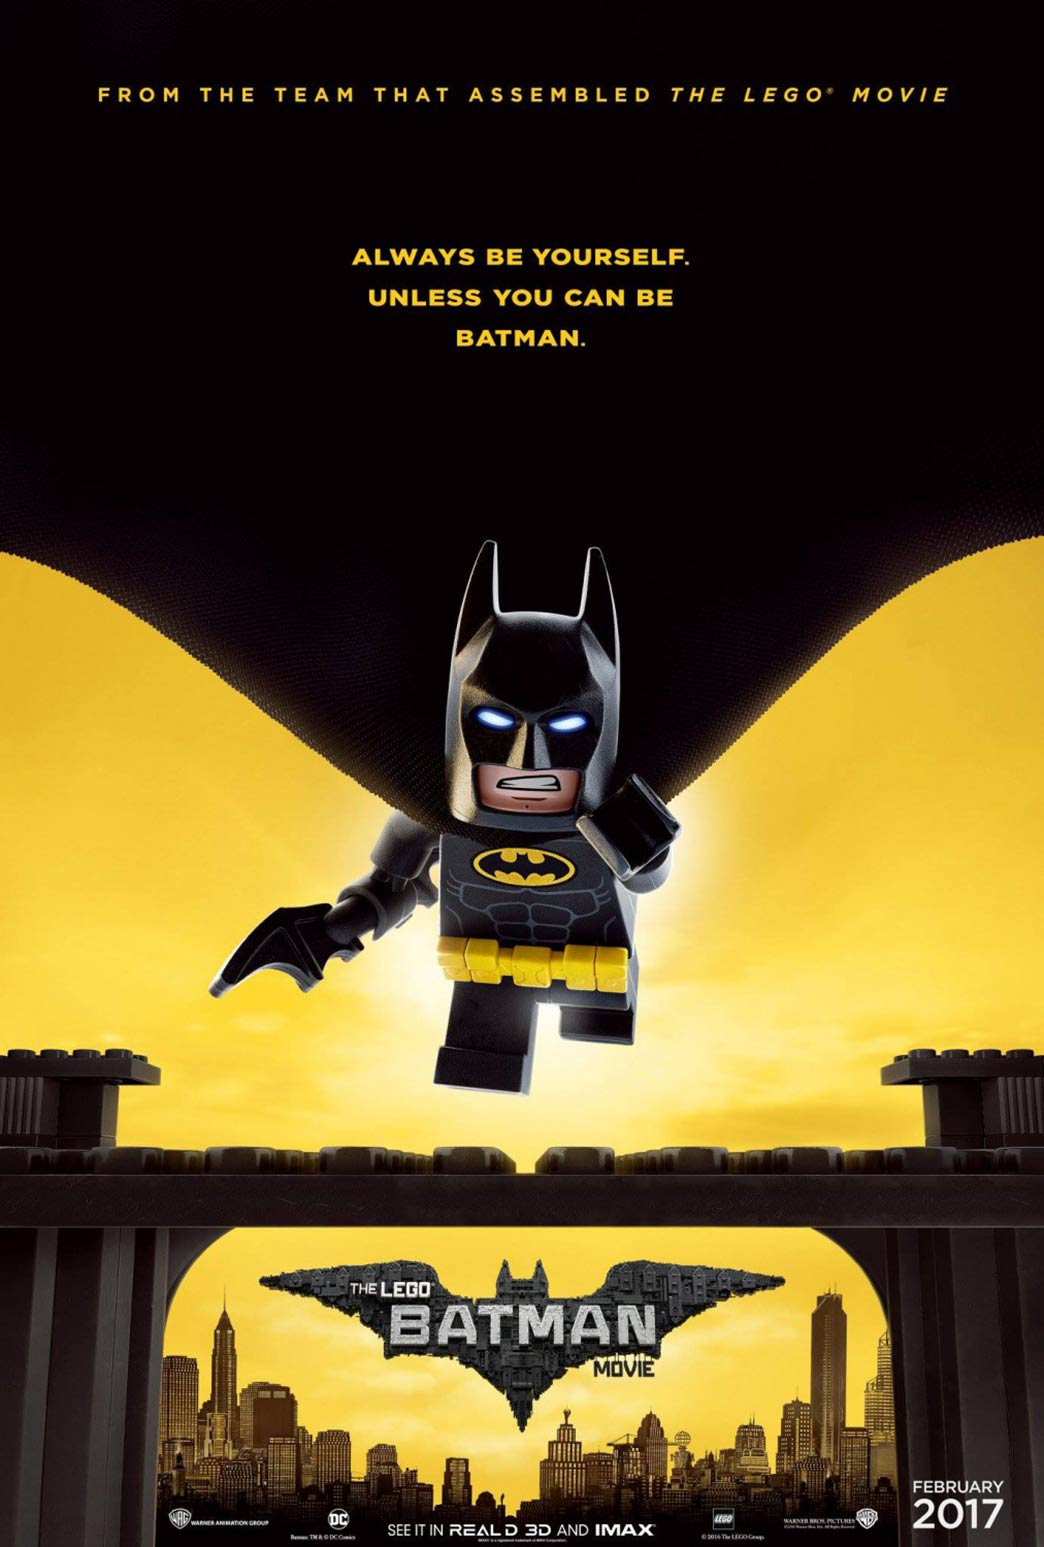 The Lego Batman Movie Poster #3